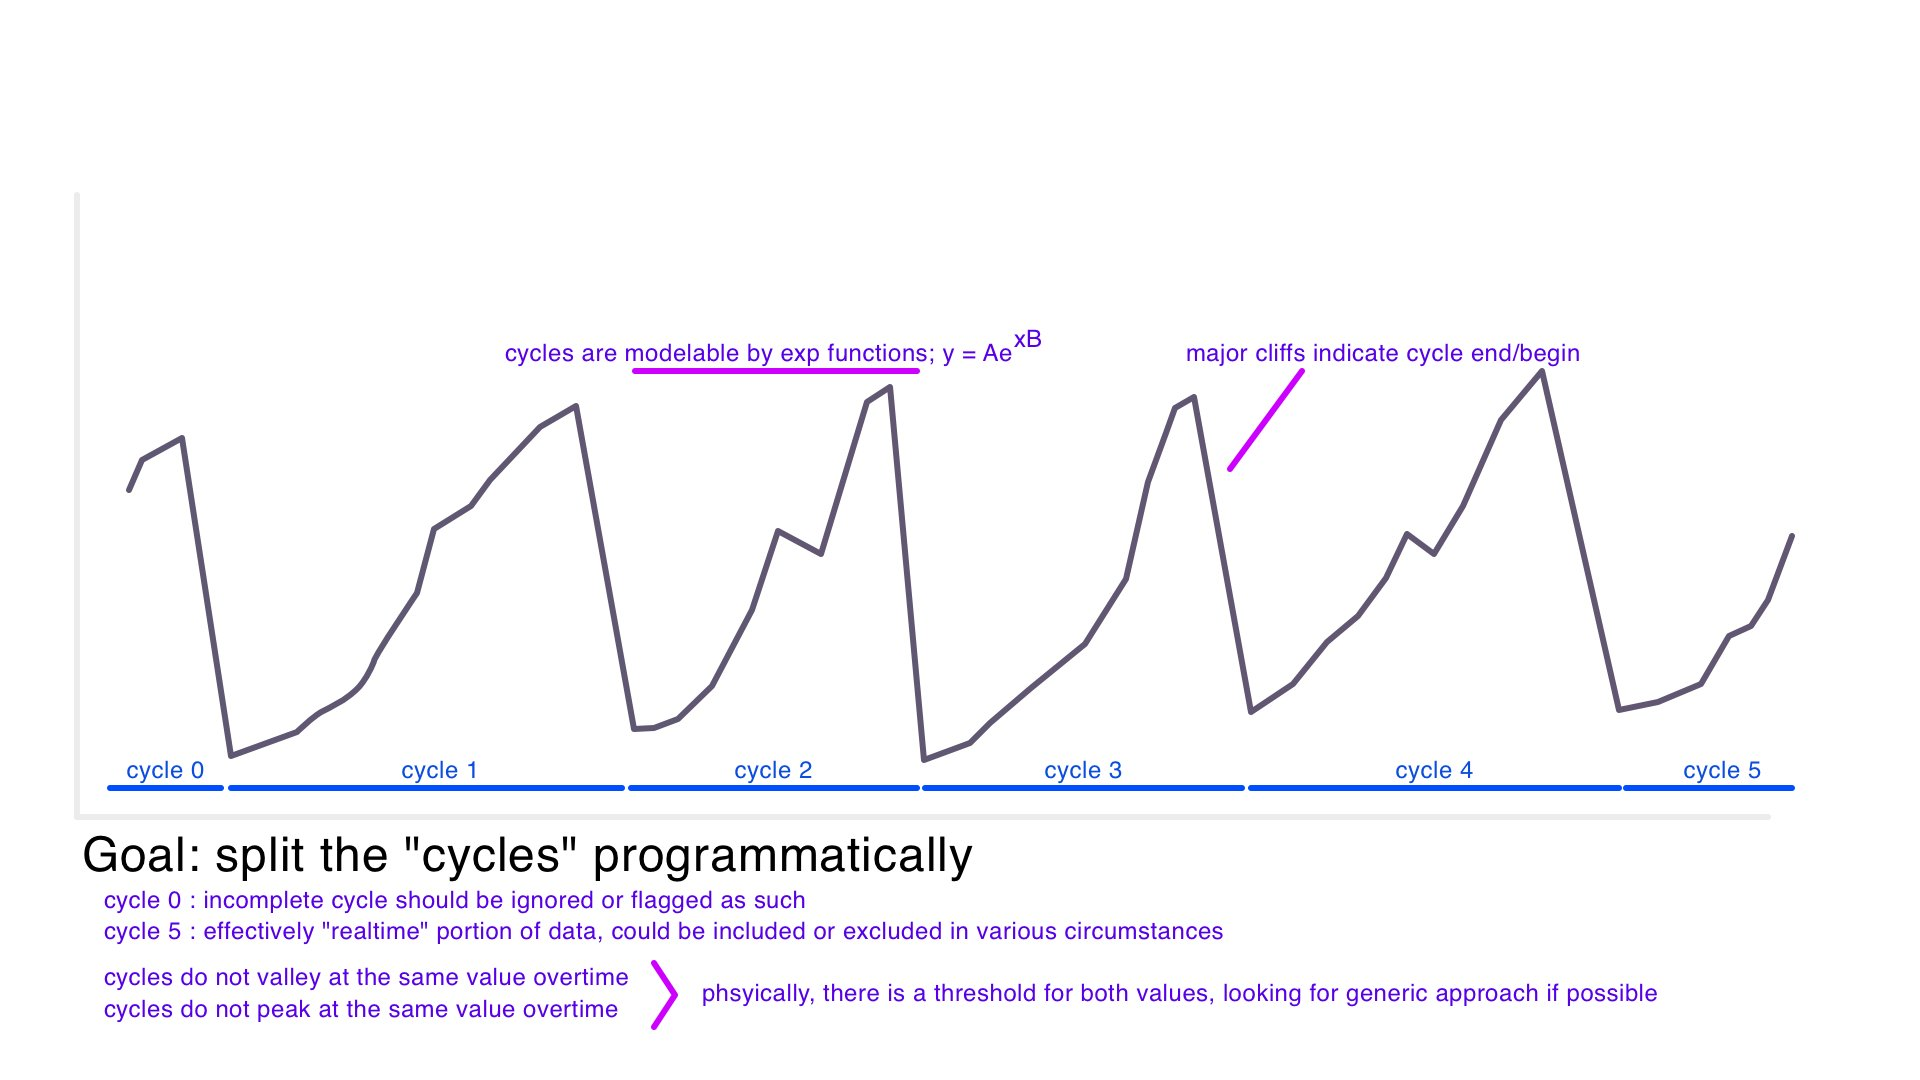 example image of cycles